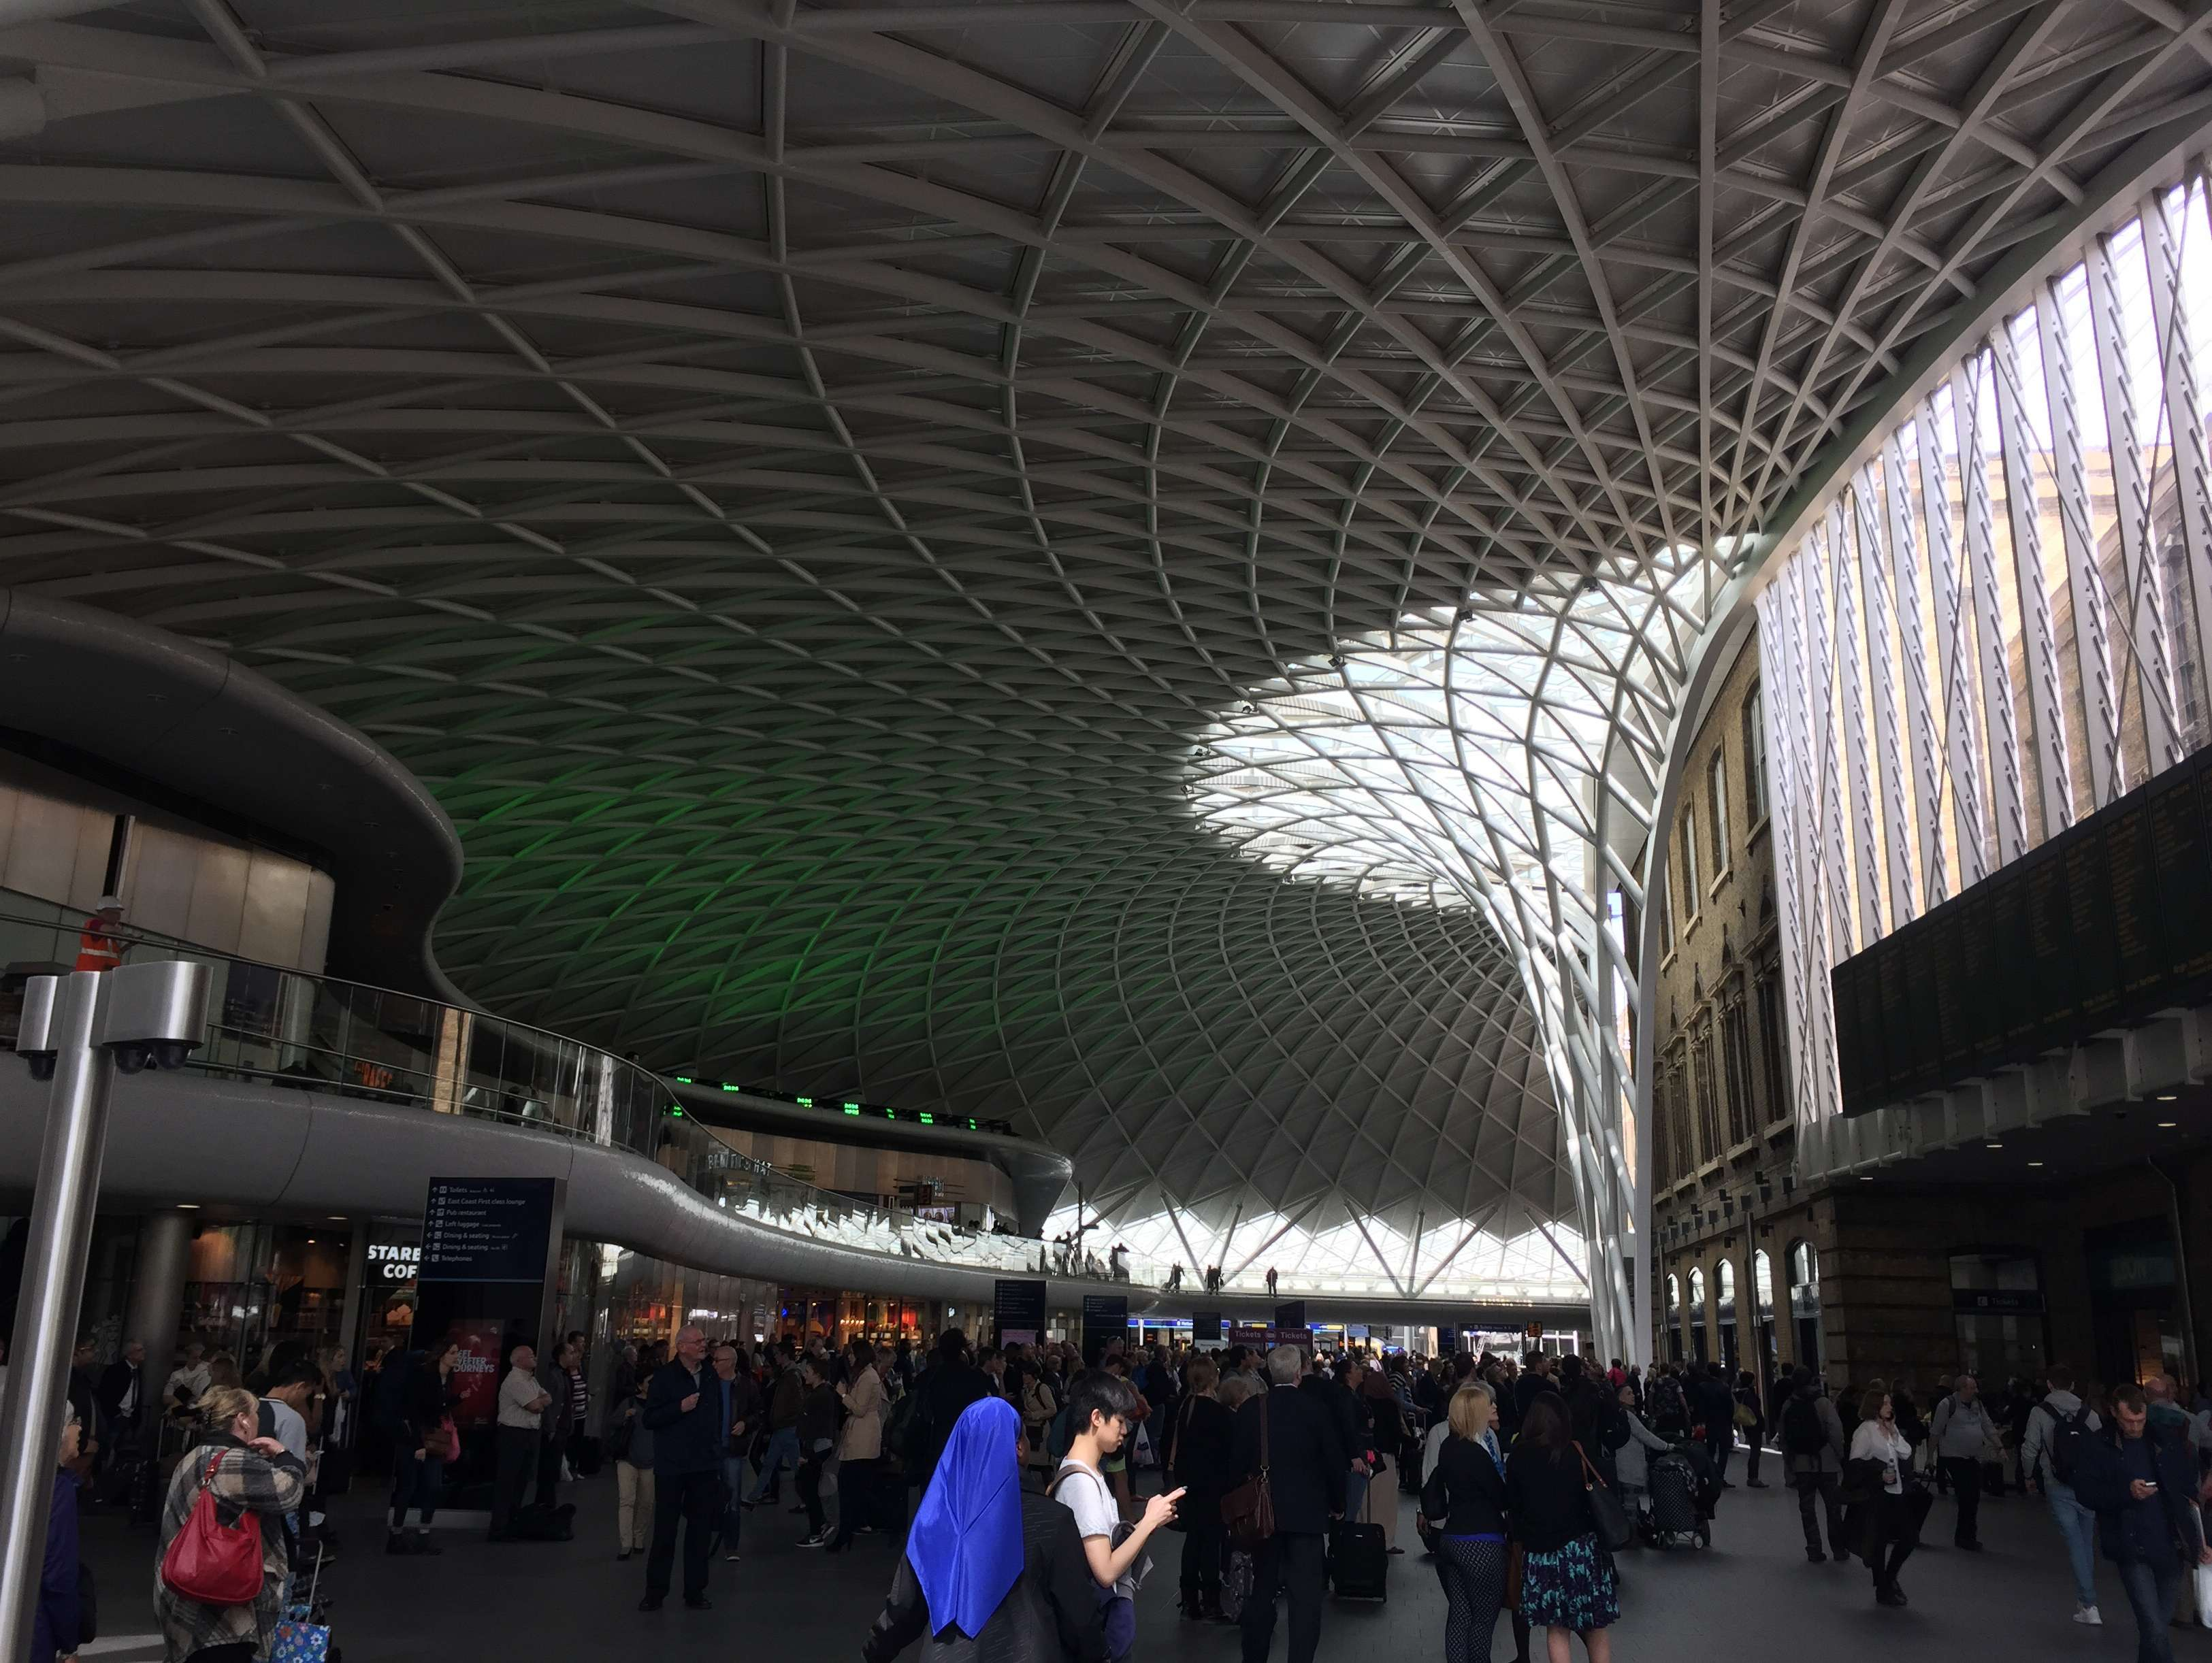 Reasons to live it large in London, England. - Kings Cross Station